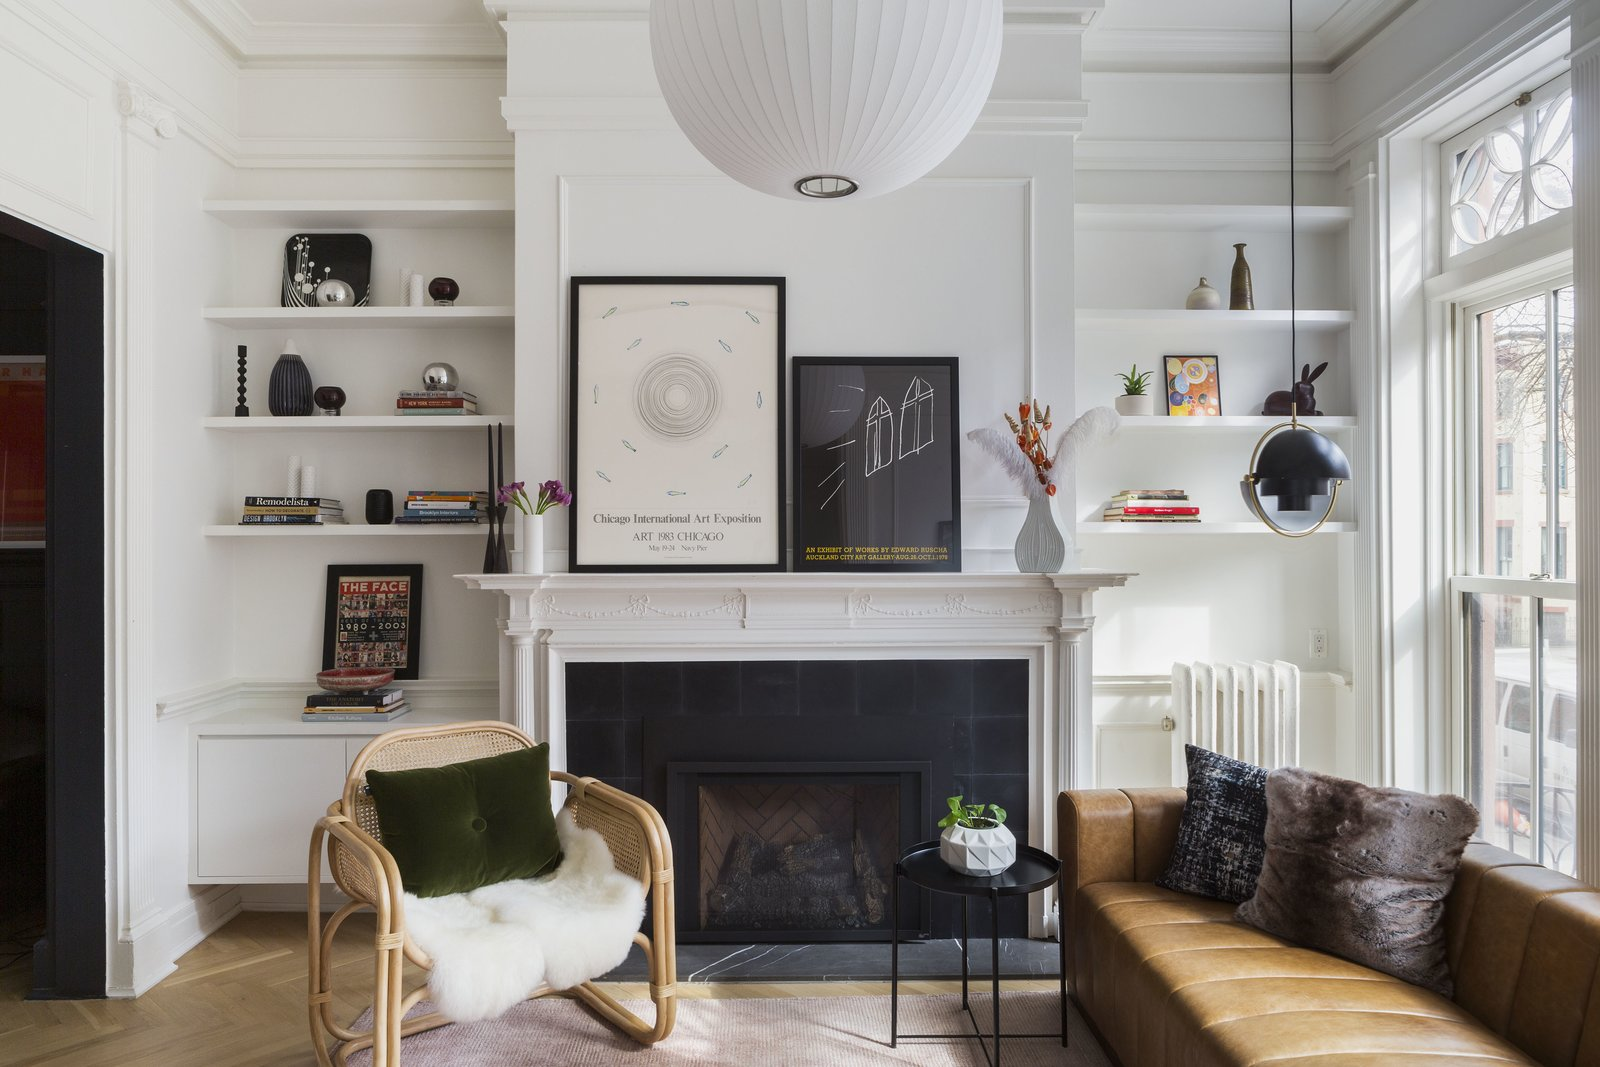 Custom shelving now flanks the fireplace, now composed of encaustic tile from the Cement Tile Shop and a marble hearth. A floating cabinet on one side balances an uncovered radiator on the other, and Benjamin Moore's Chantilly Lace unifies the scheme. Throughout the first floor, Bona Traffic white oak floors with a matte finish is laid in a herringbone pattern.